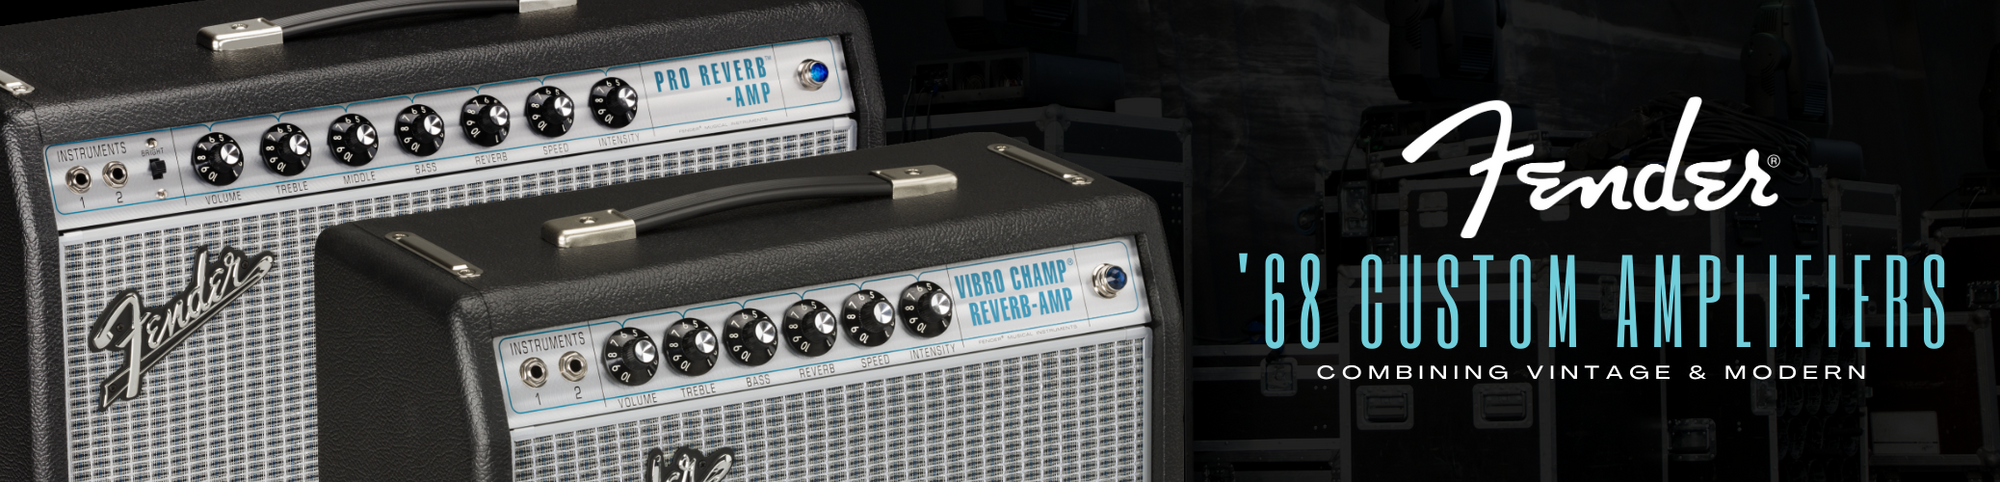 A look inside the new Fender Pro Reverb & Vibro Champ Reverb '68 Custom Amplifiers.